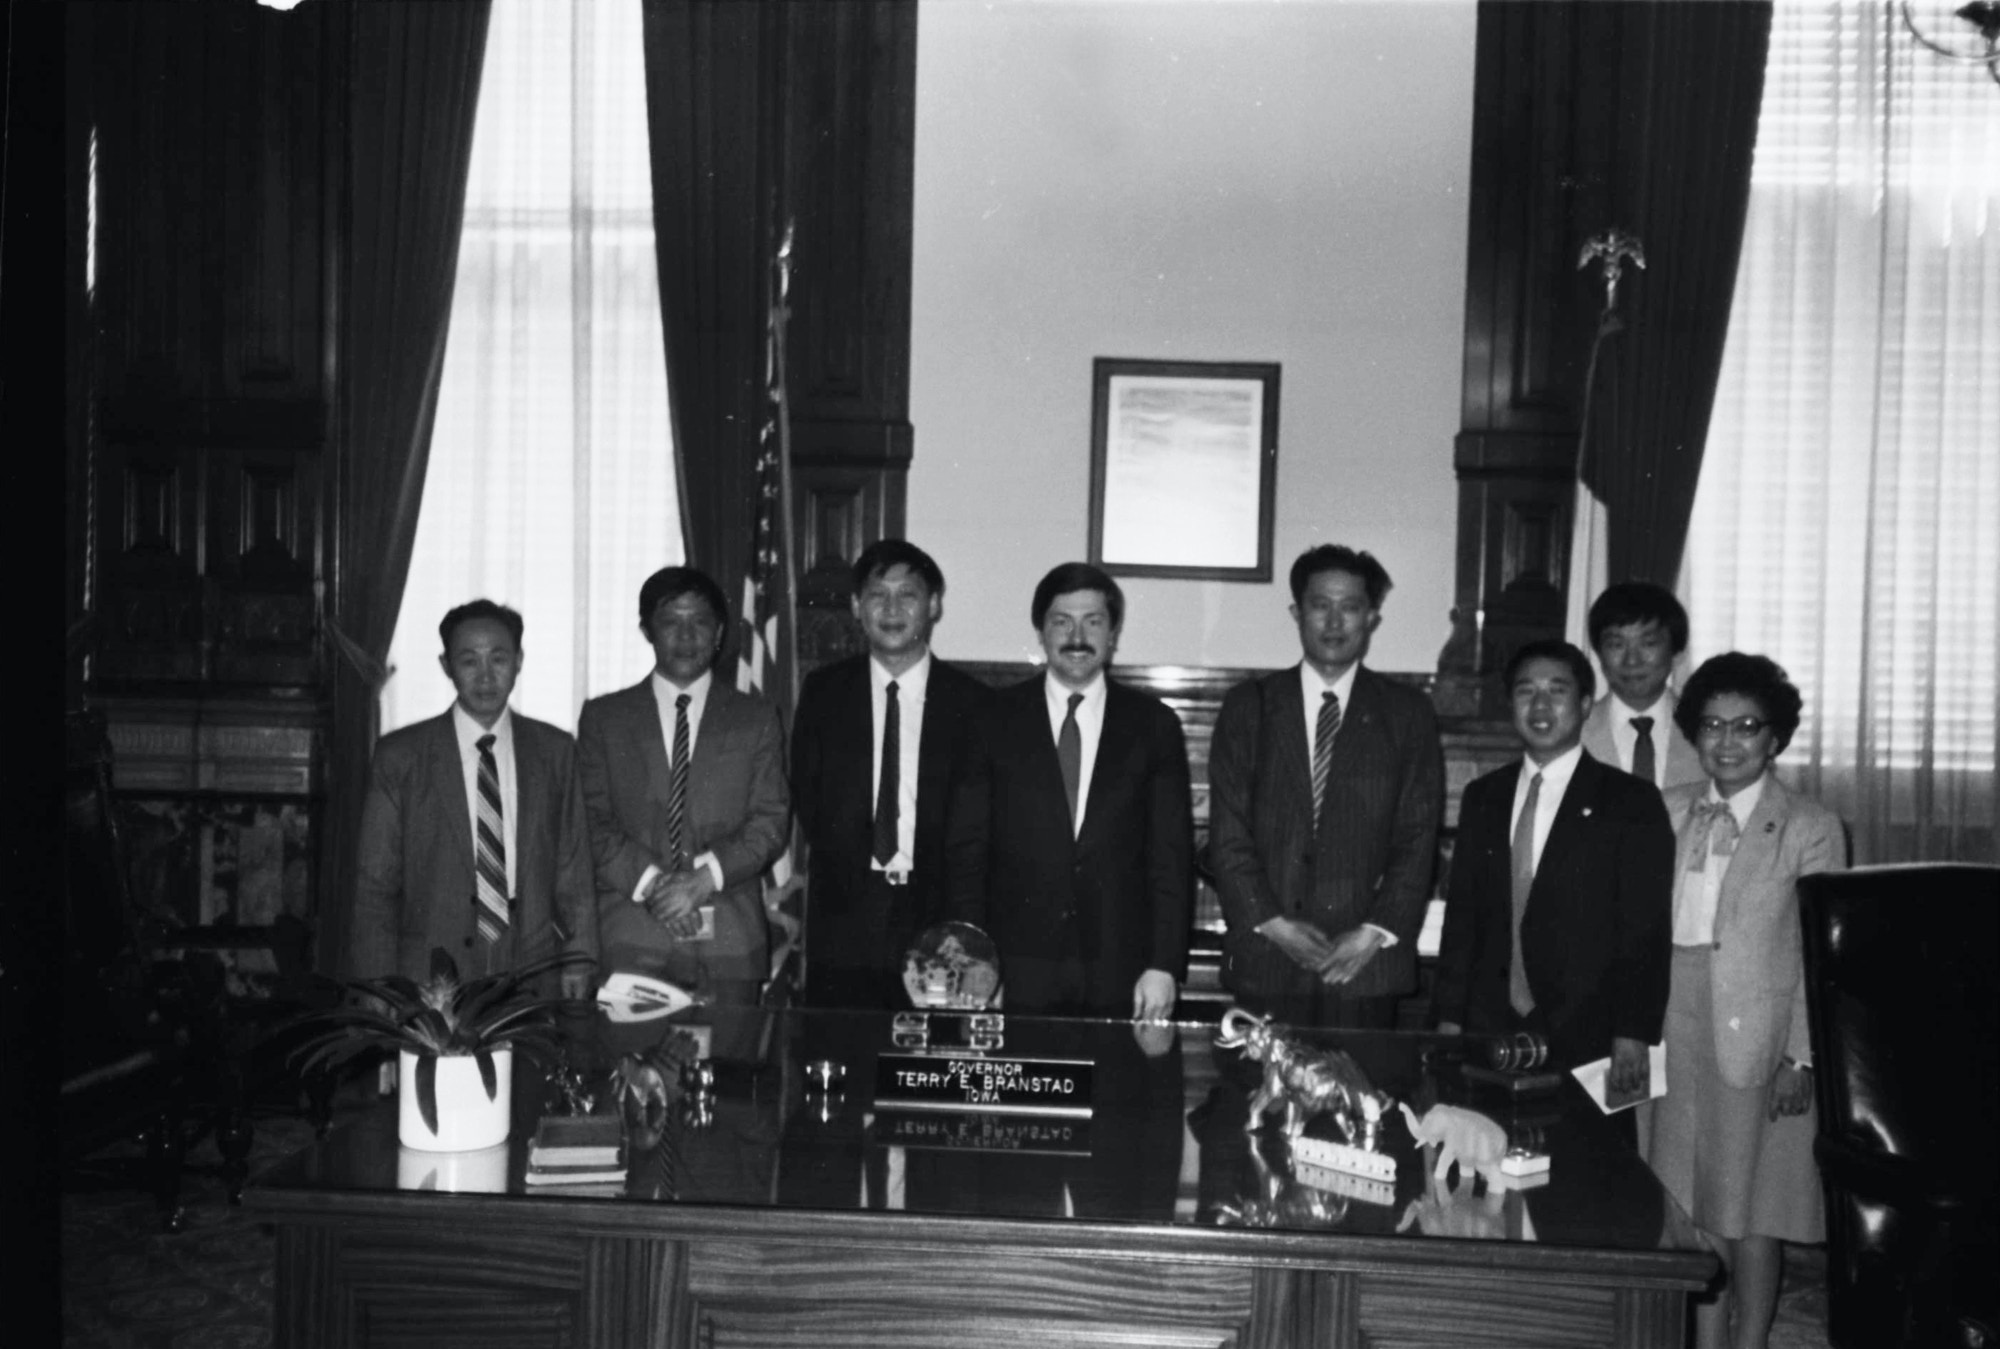 Governor Terry Branstad and President Xi Jinping at Governor's Office in Des Moines, Iowa in 1985.